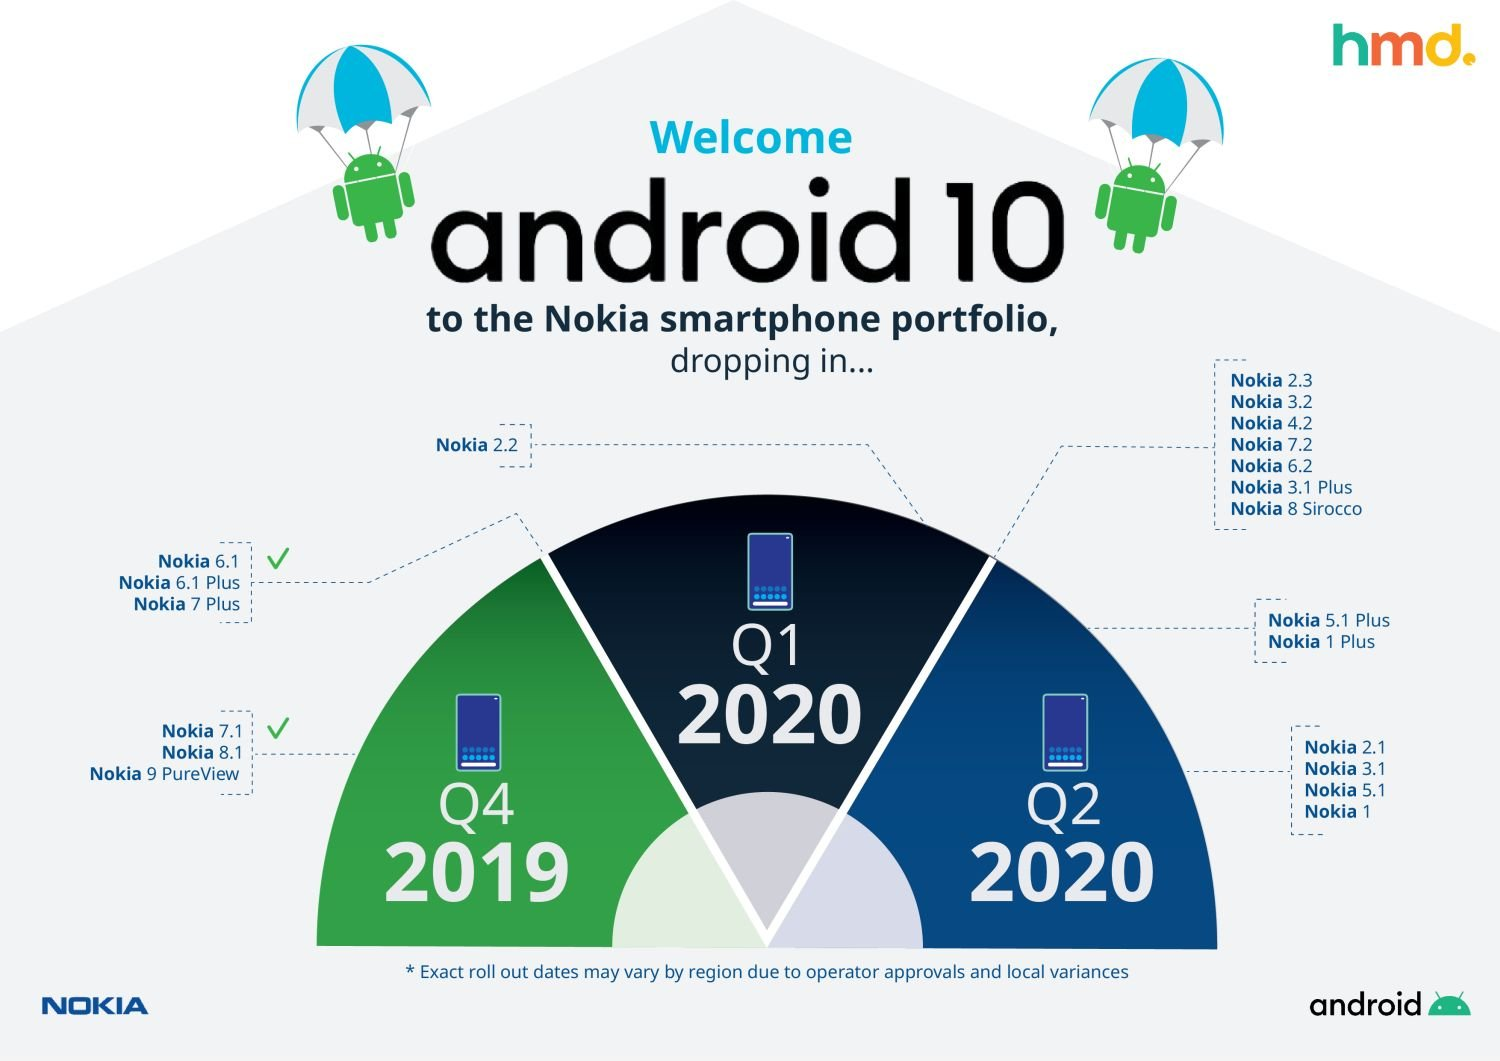 nokia android 10 timeline